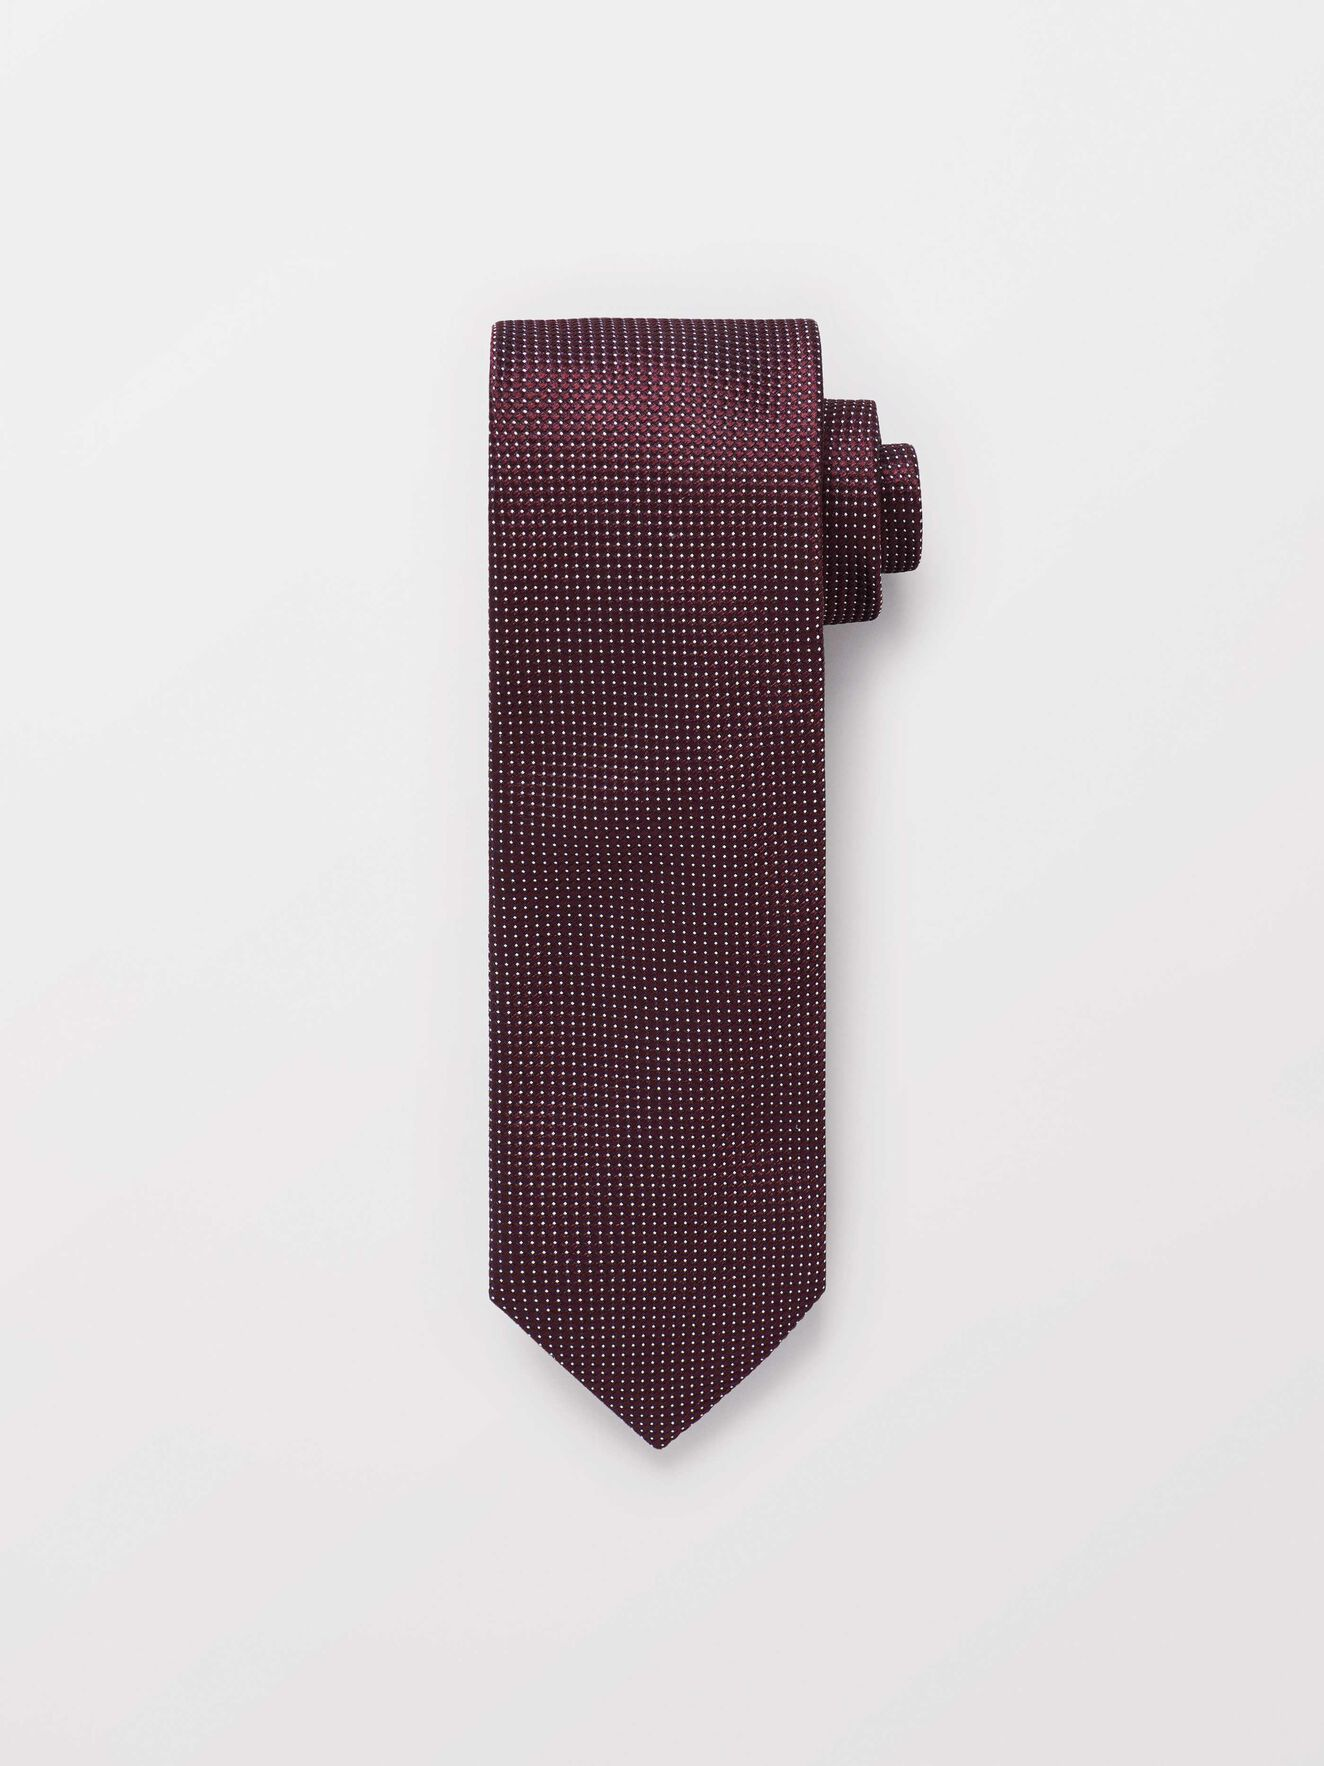 Tottis Krawatte in Noon Plum from Tiger of Sweden